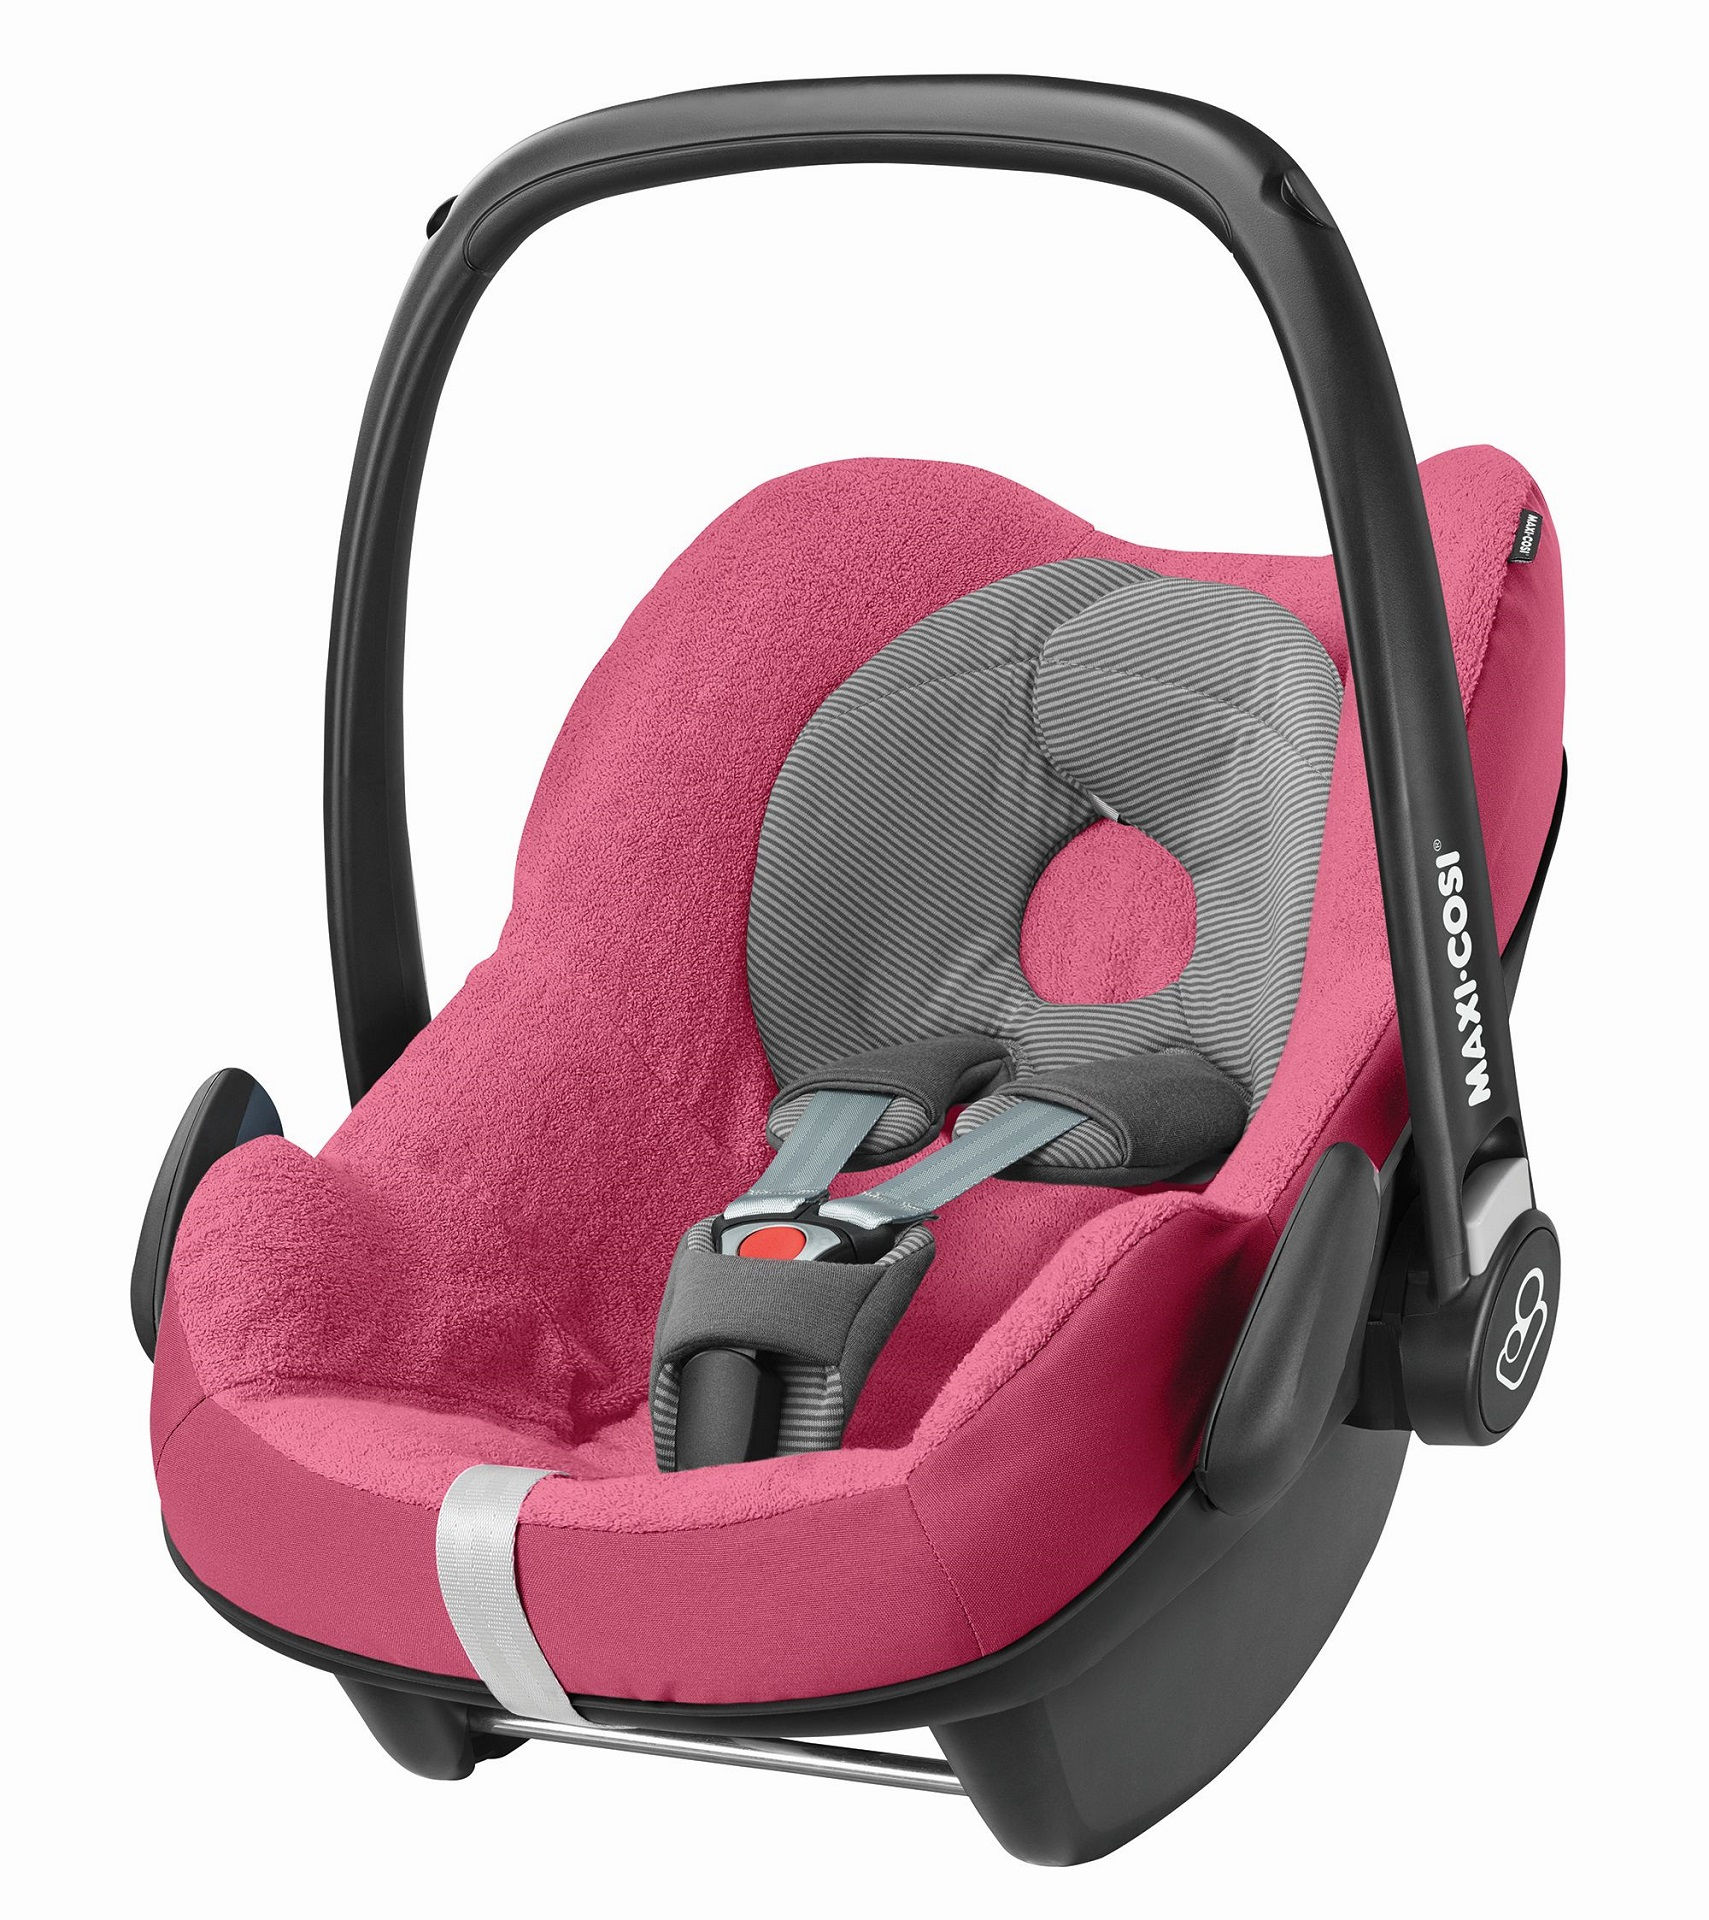 maxi cosi summer cover for infant carrier pebble 2018 2018 pink buy at kidsroom car seats. Black Bedroom Furniture Sets. Home Design Ideas